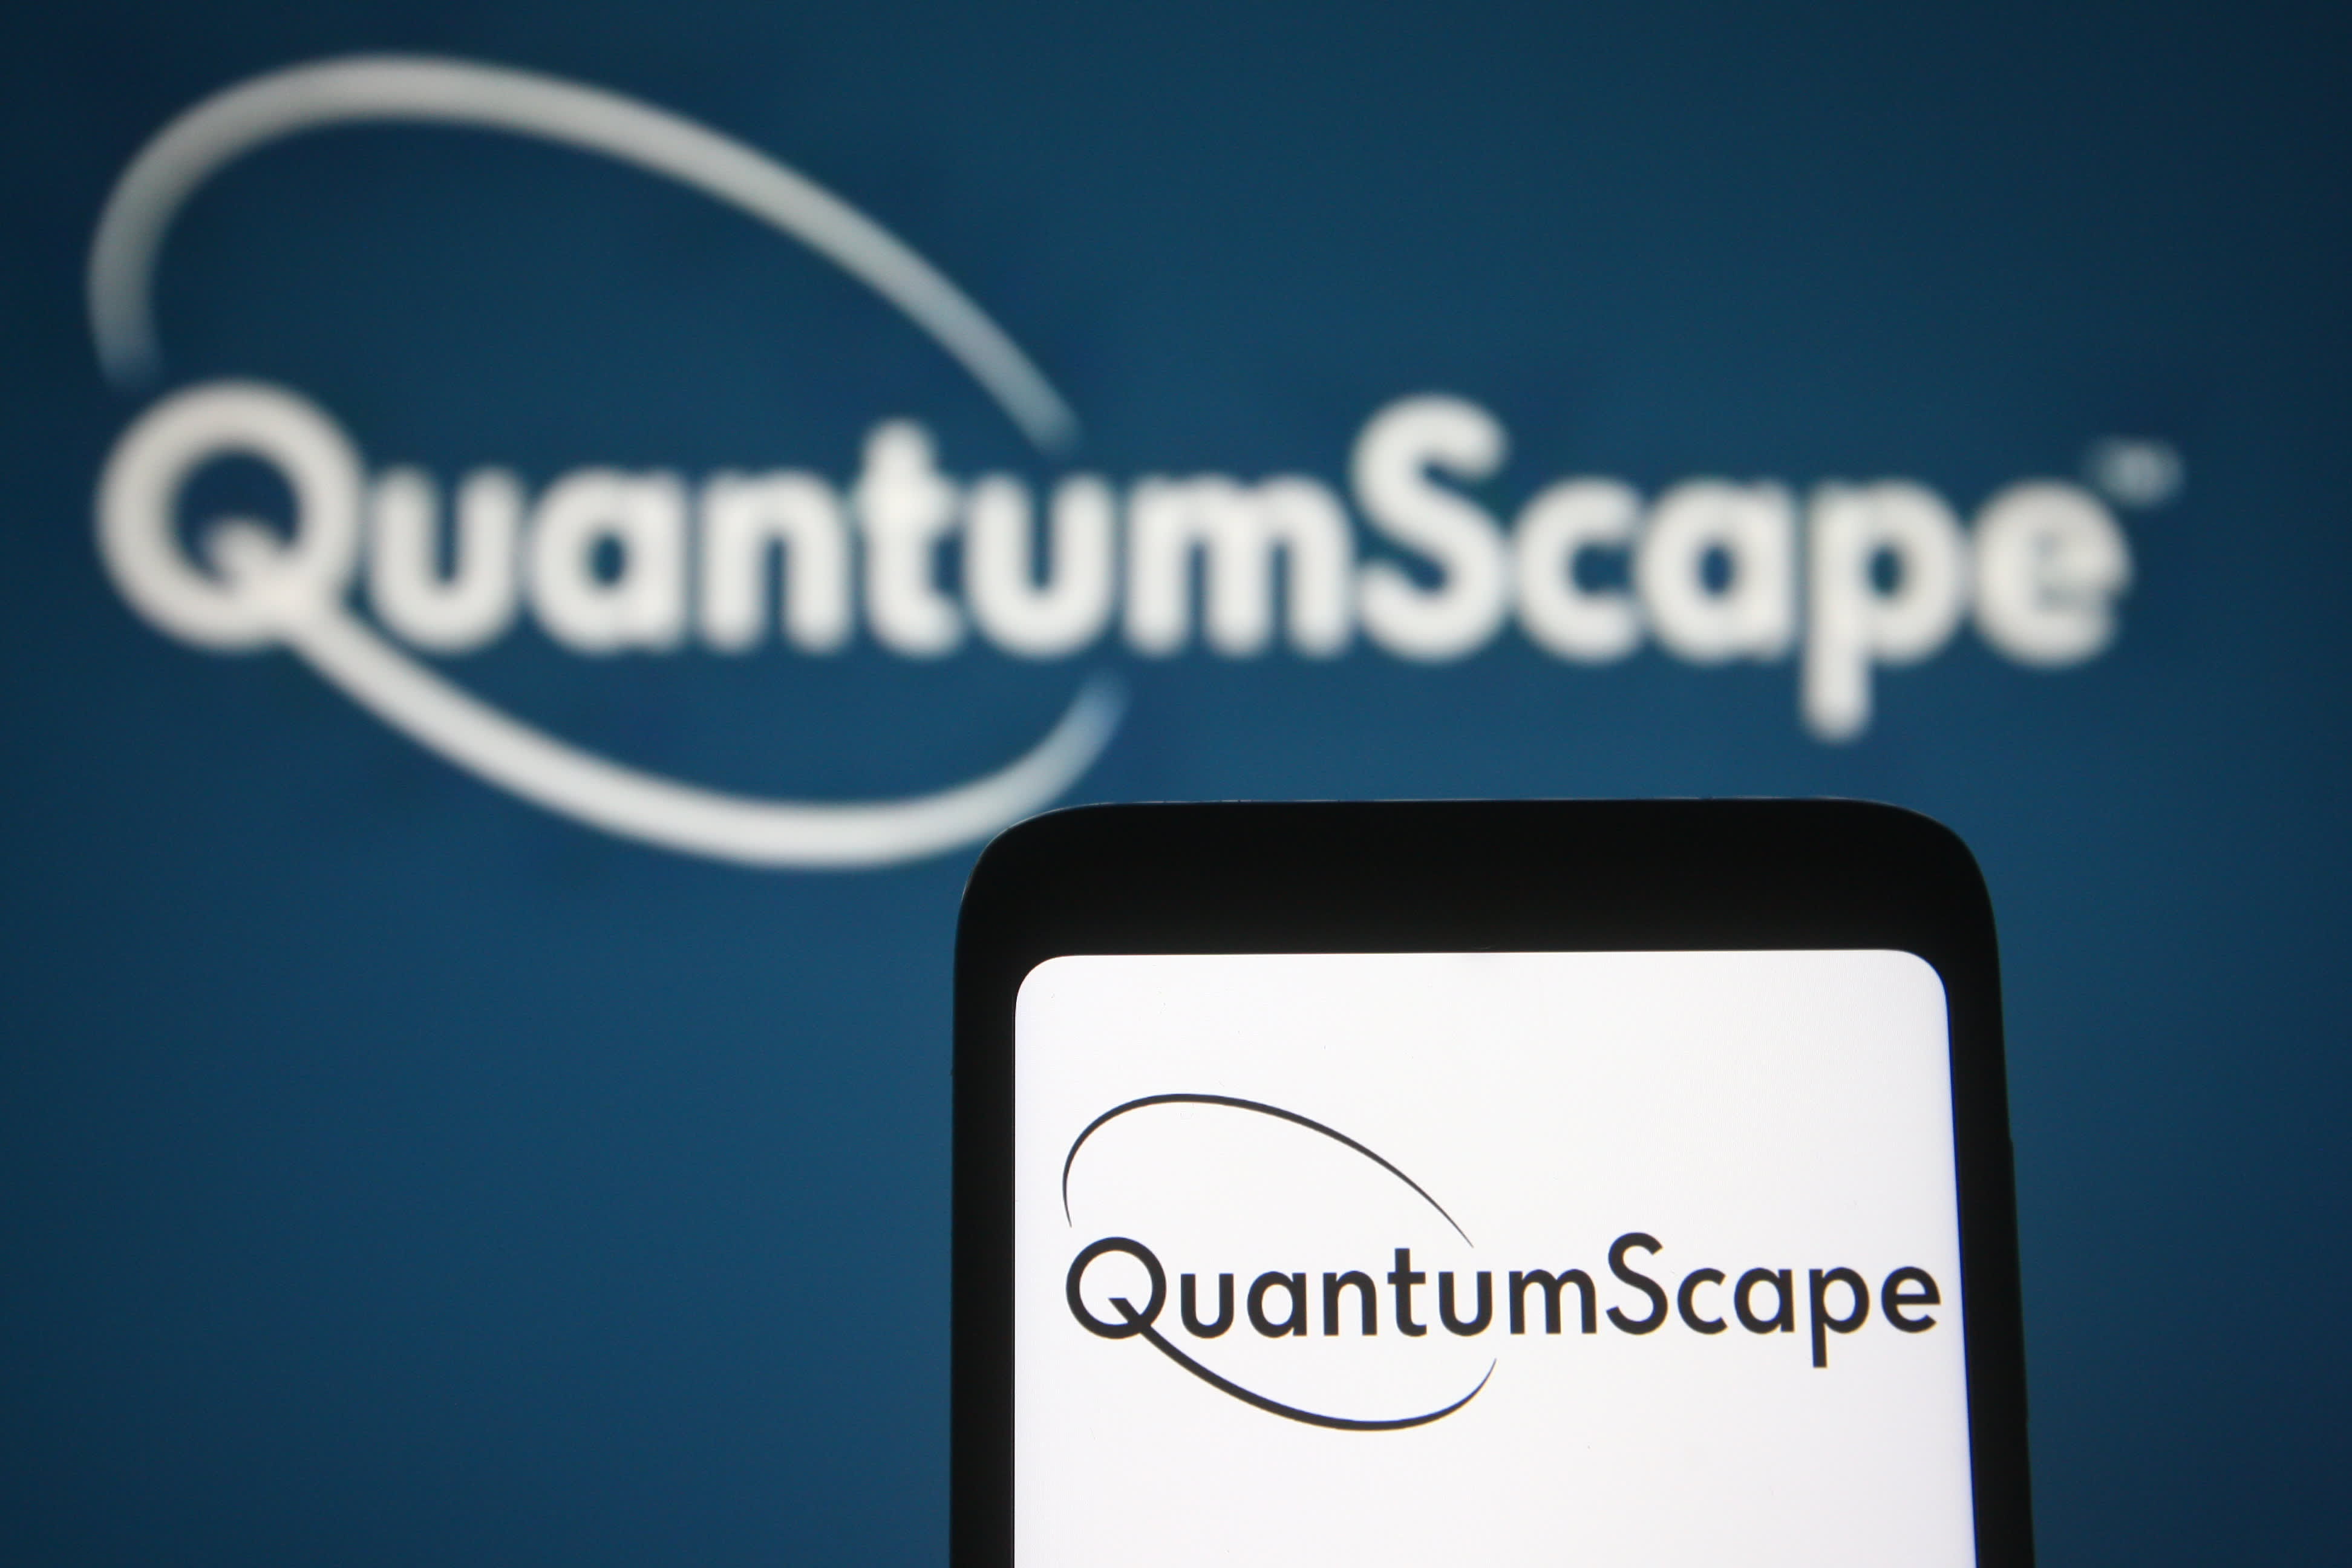 QuantumScape CEO Mulls Legal Action in Response to Activist Short-Seller's Critical Report – NBC Connecticut